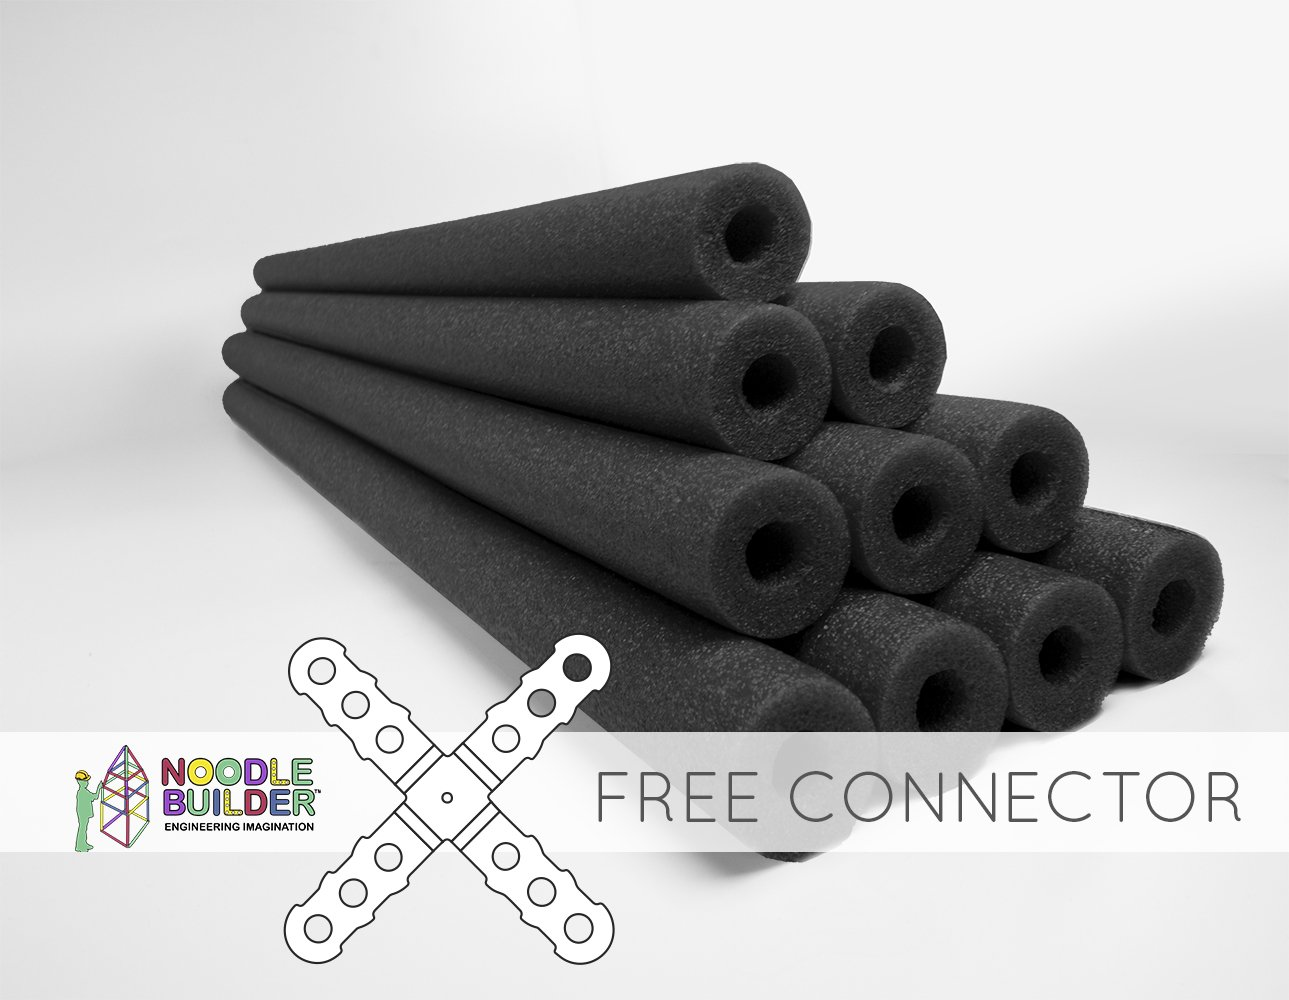 Oodles of Noodles Deluxe Foam Pool Swim Noodles 10 Pack Black 52 Inch Wholesale Pricing Bulk Pack and Free Connector